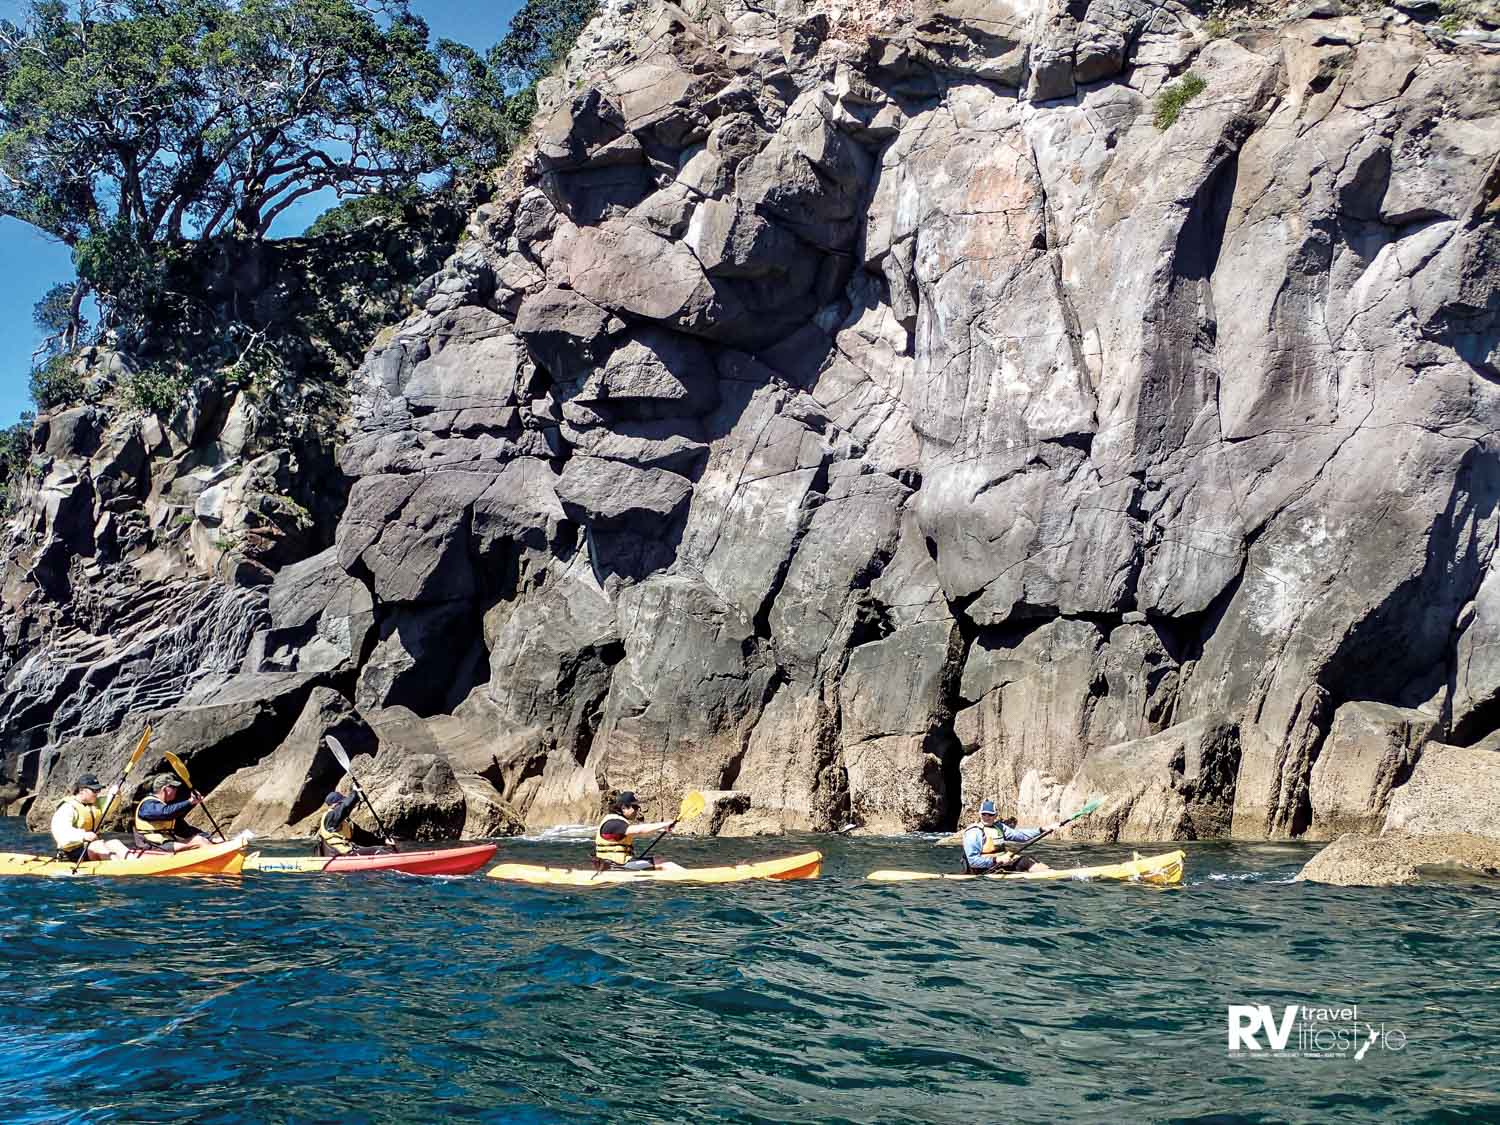 Kenny McCracken's KG Kayaks is one of Whakatane's top visitor attractions